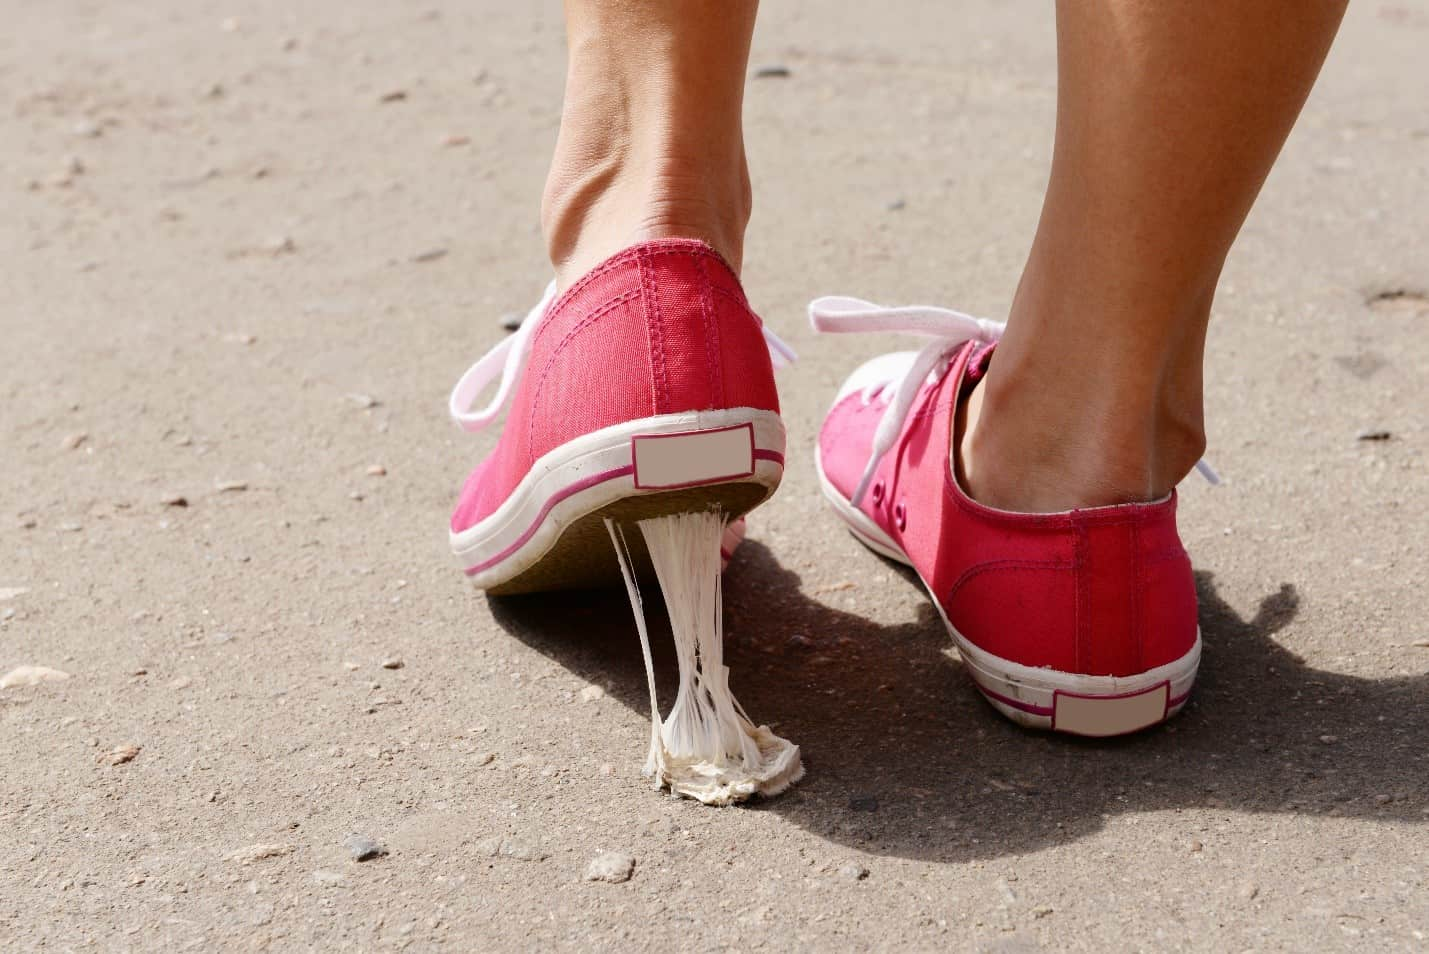 remove chewing gum from red shoes